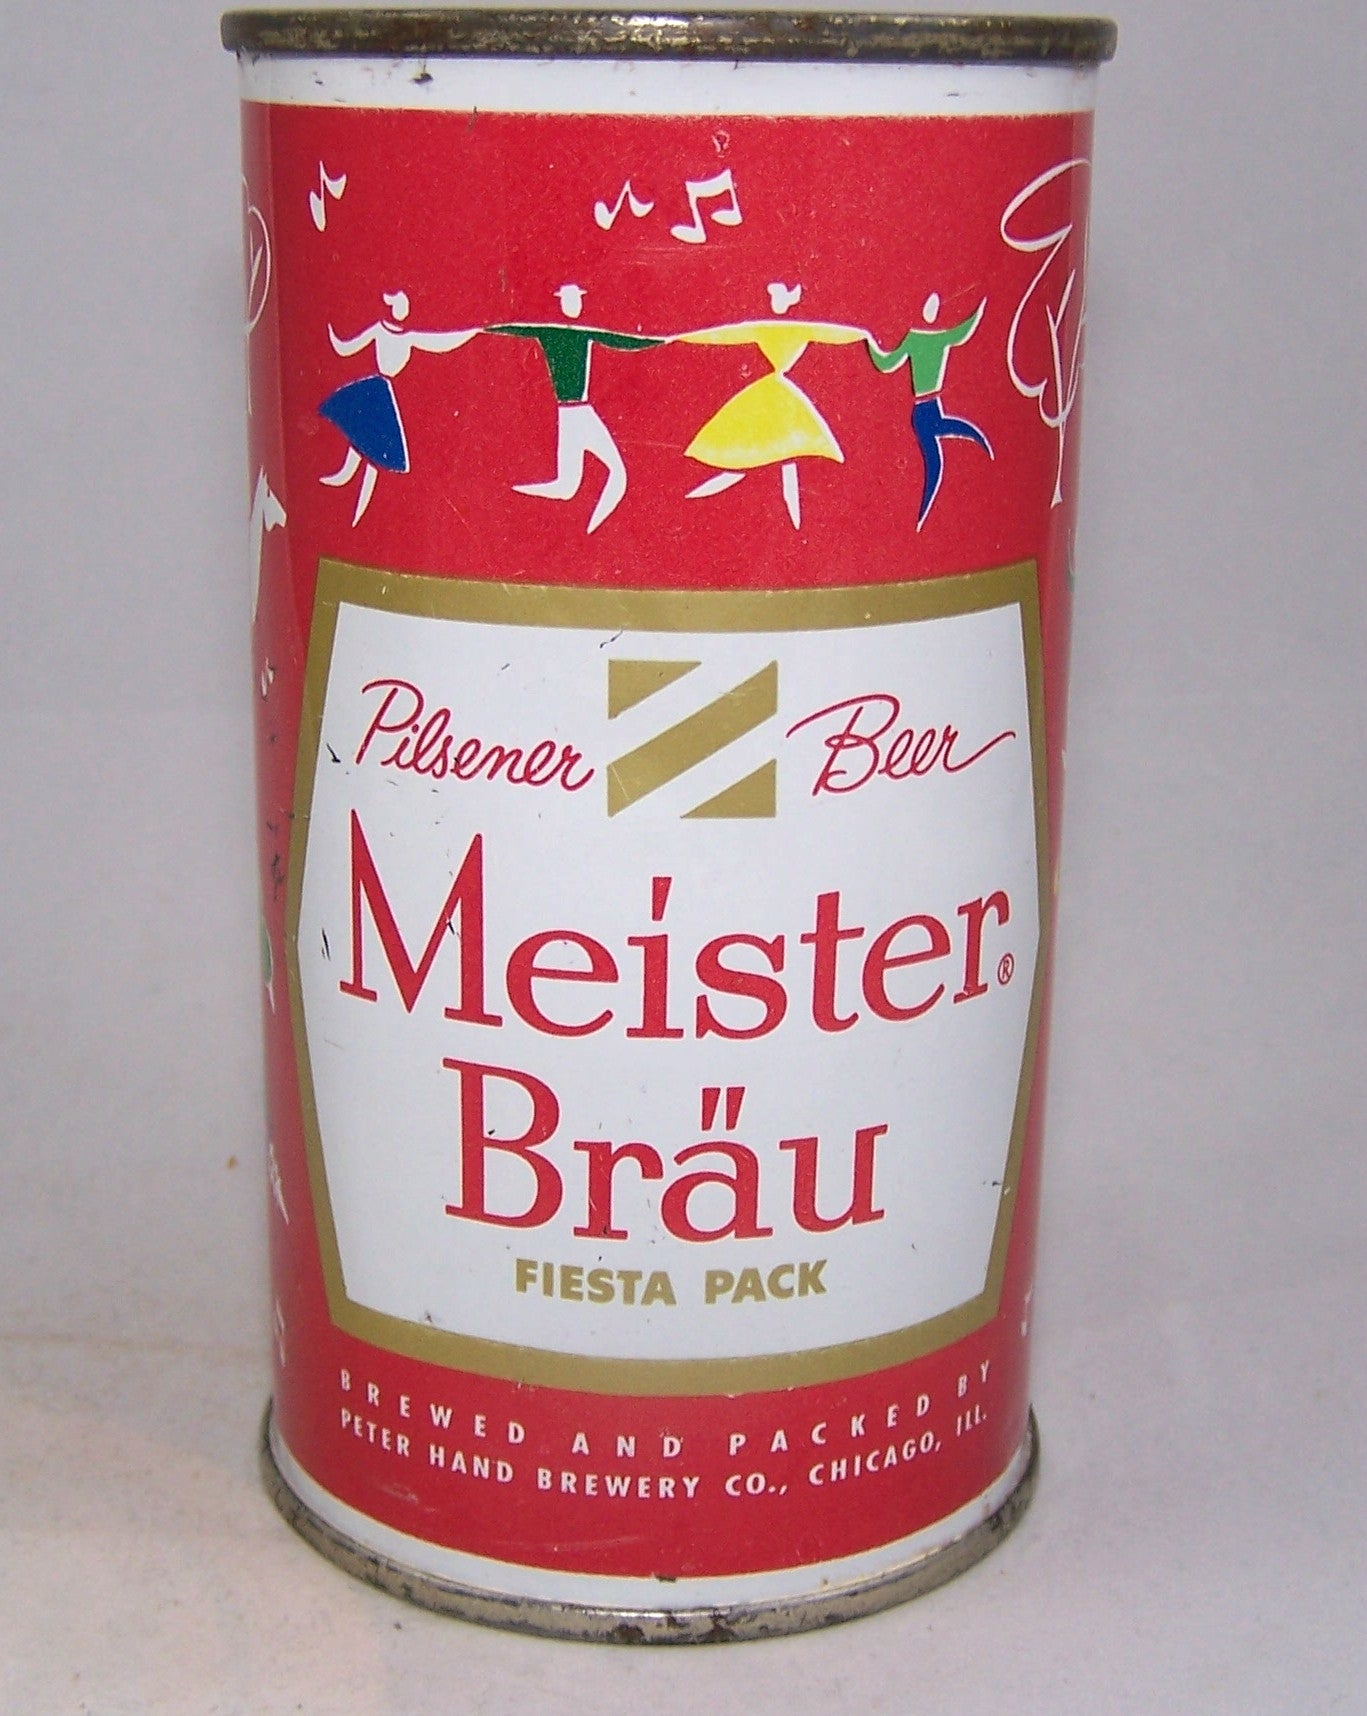 Meister Brau Beer, Country Can, (Scandinavia) USBC 97 - 11, Grade 1 sold 05/15/16